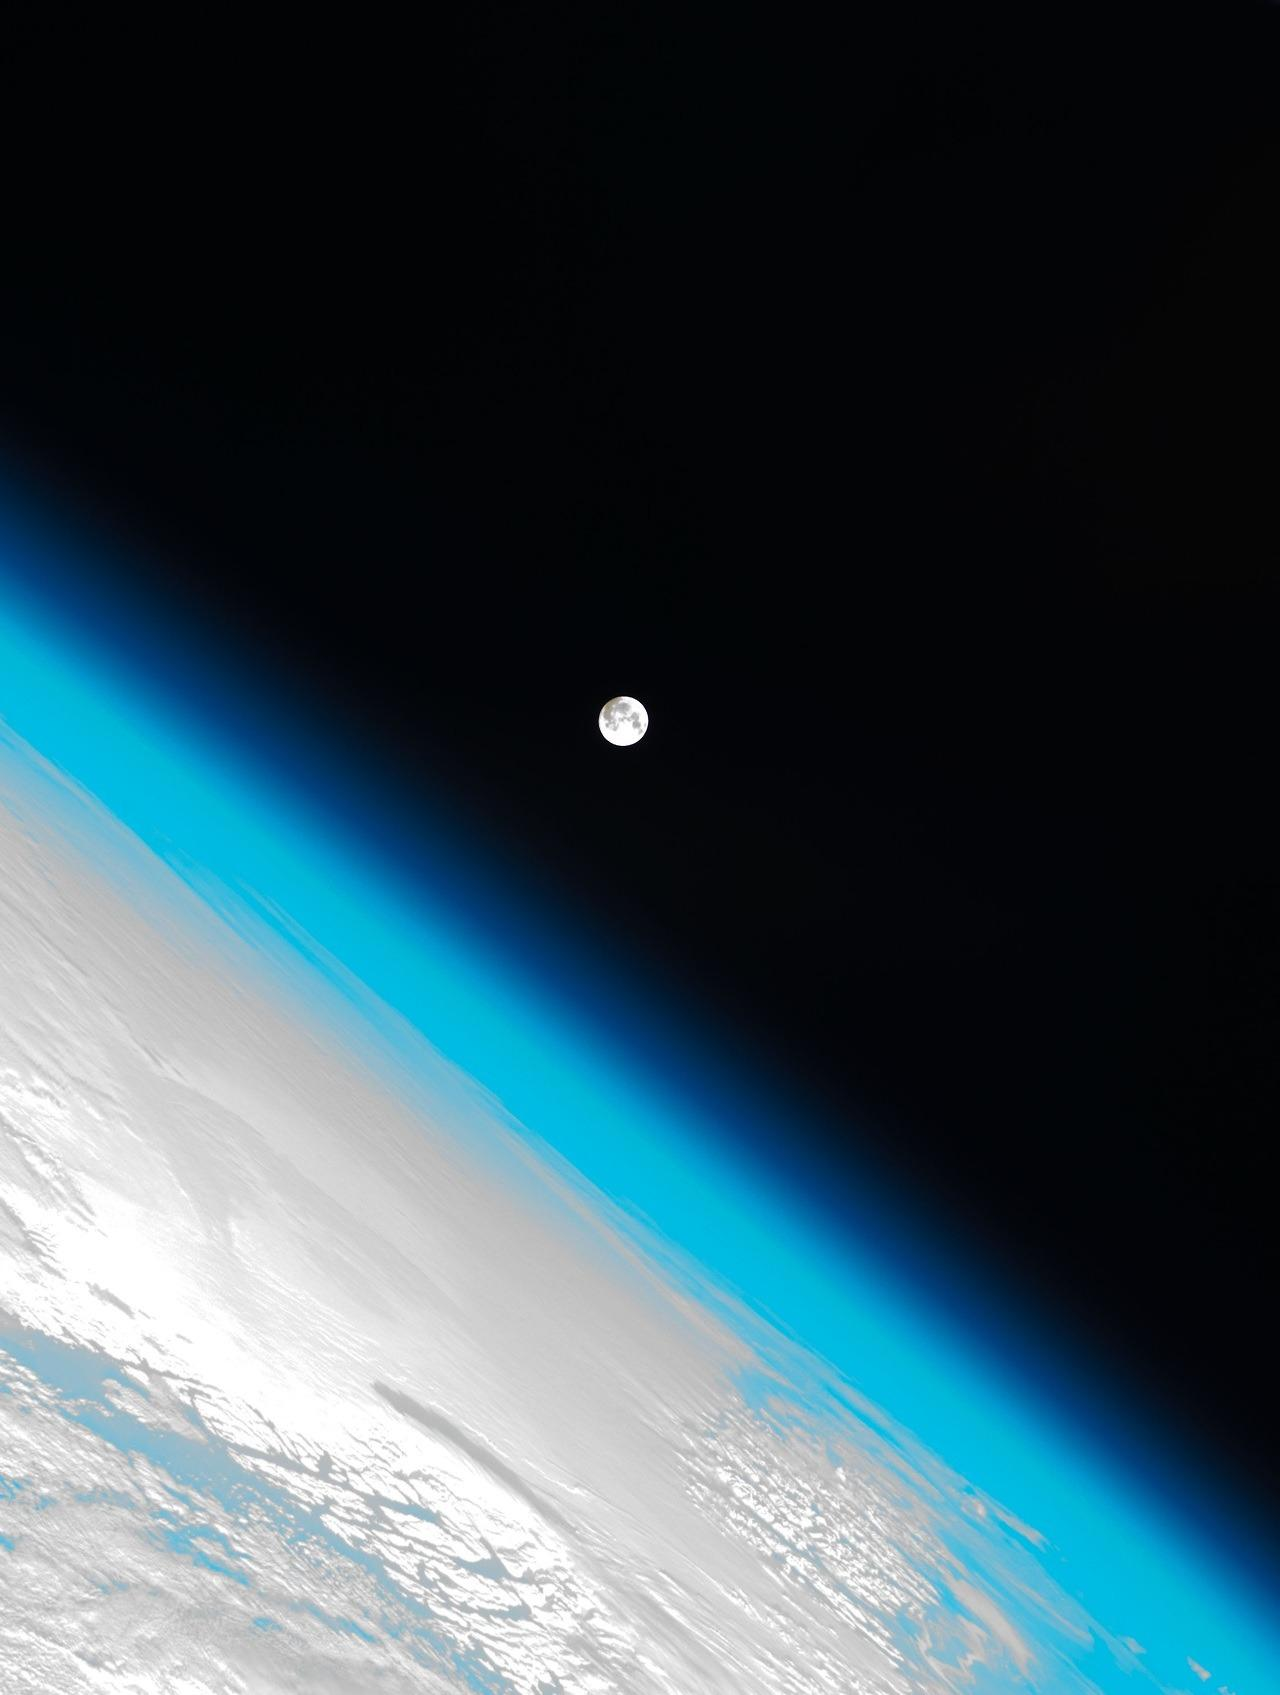 Photo Of The Earths Atmosphere And The Moon Shot By The